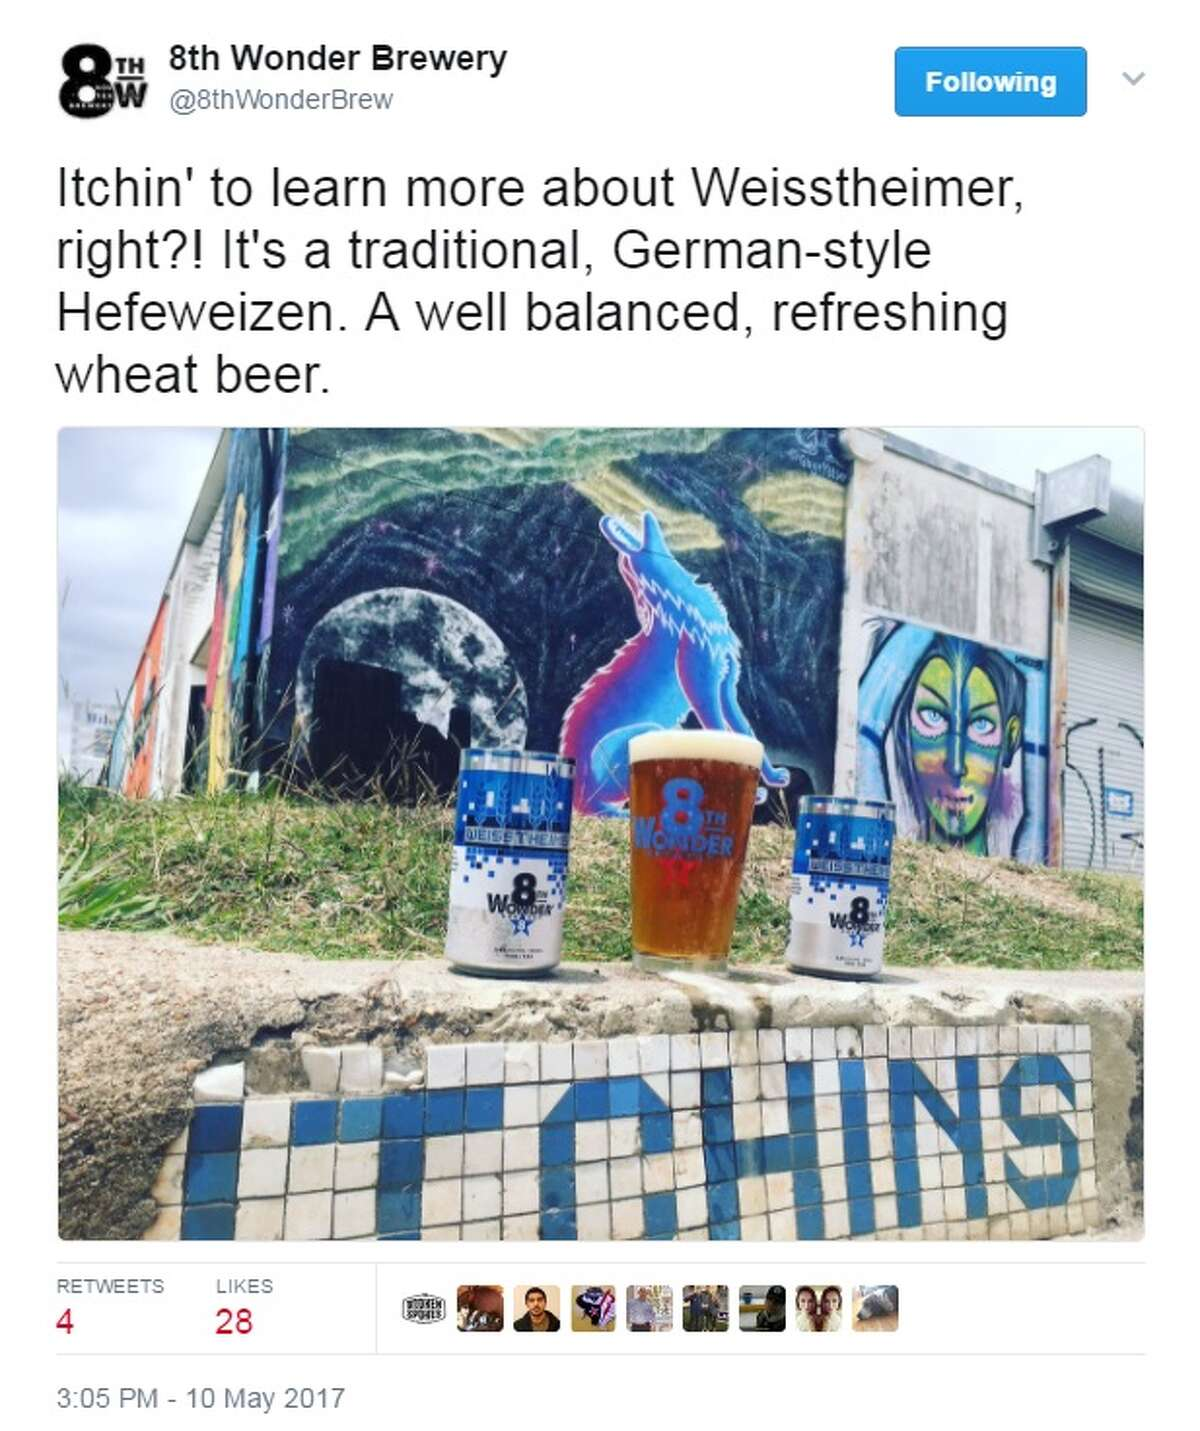 8th Wonder Brewery is re-releasing its Weisstheimer Hefeweizen beer in May 2017. Image source: Twitter Keep clicking to see what some of the most sought-after craft beers in Texas are.